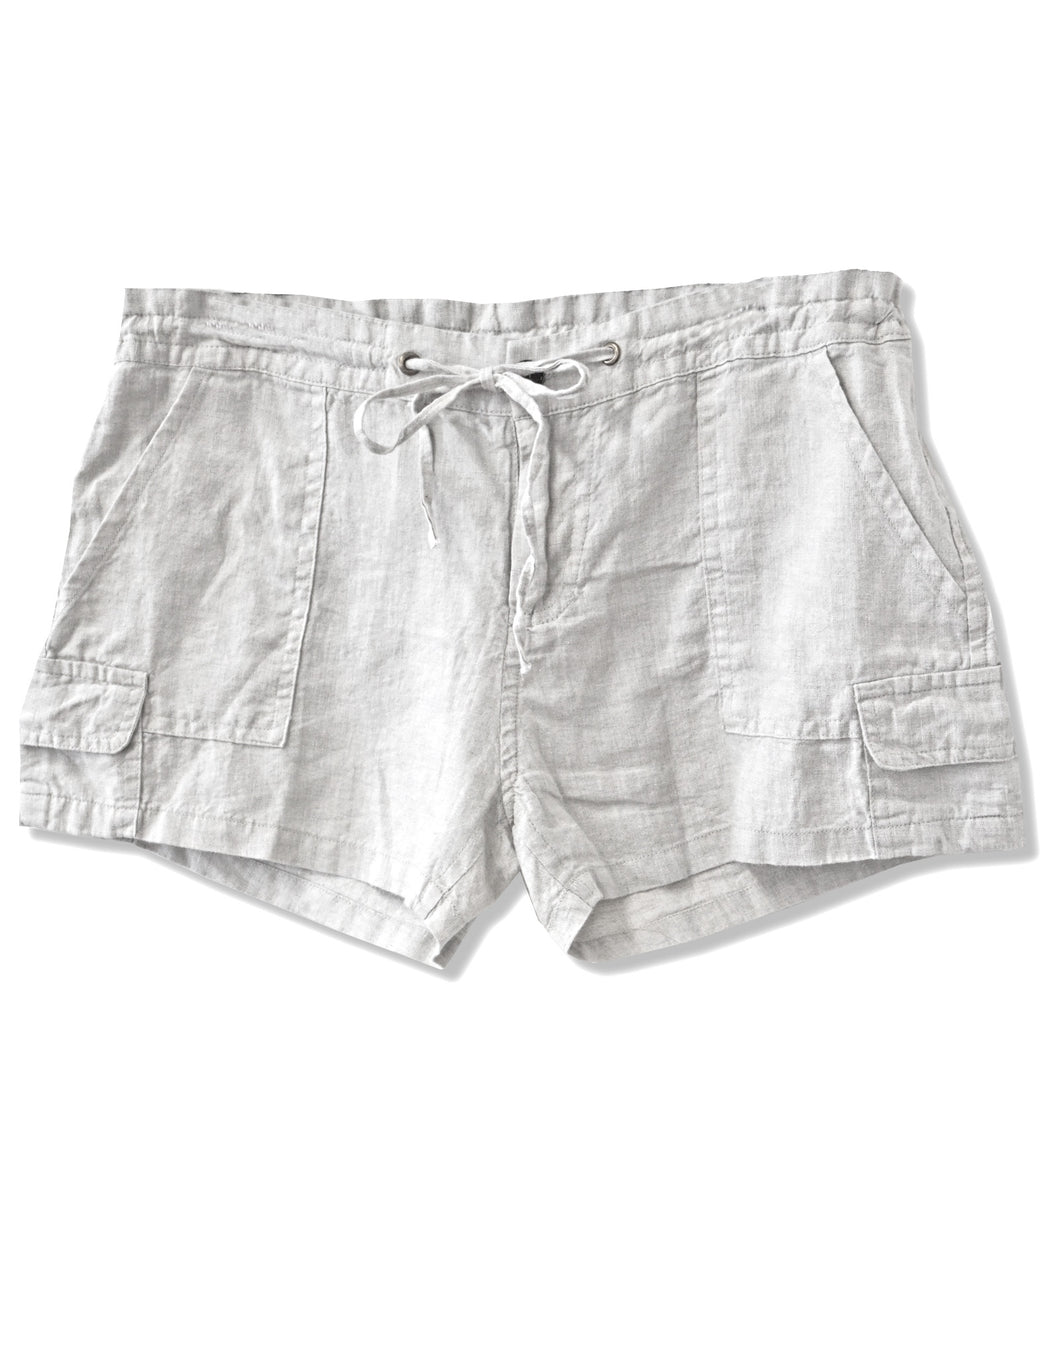 Linen Drawstring Cargo Shorts | White - 4our Dreamers